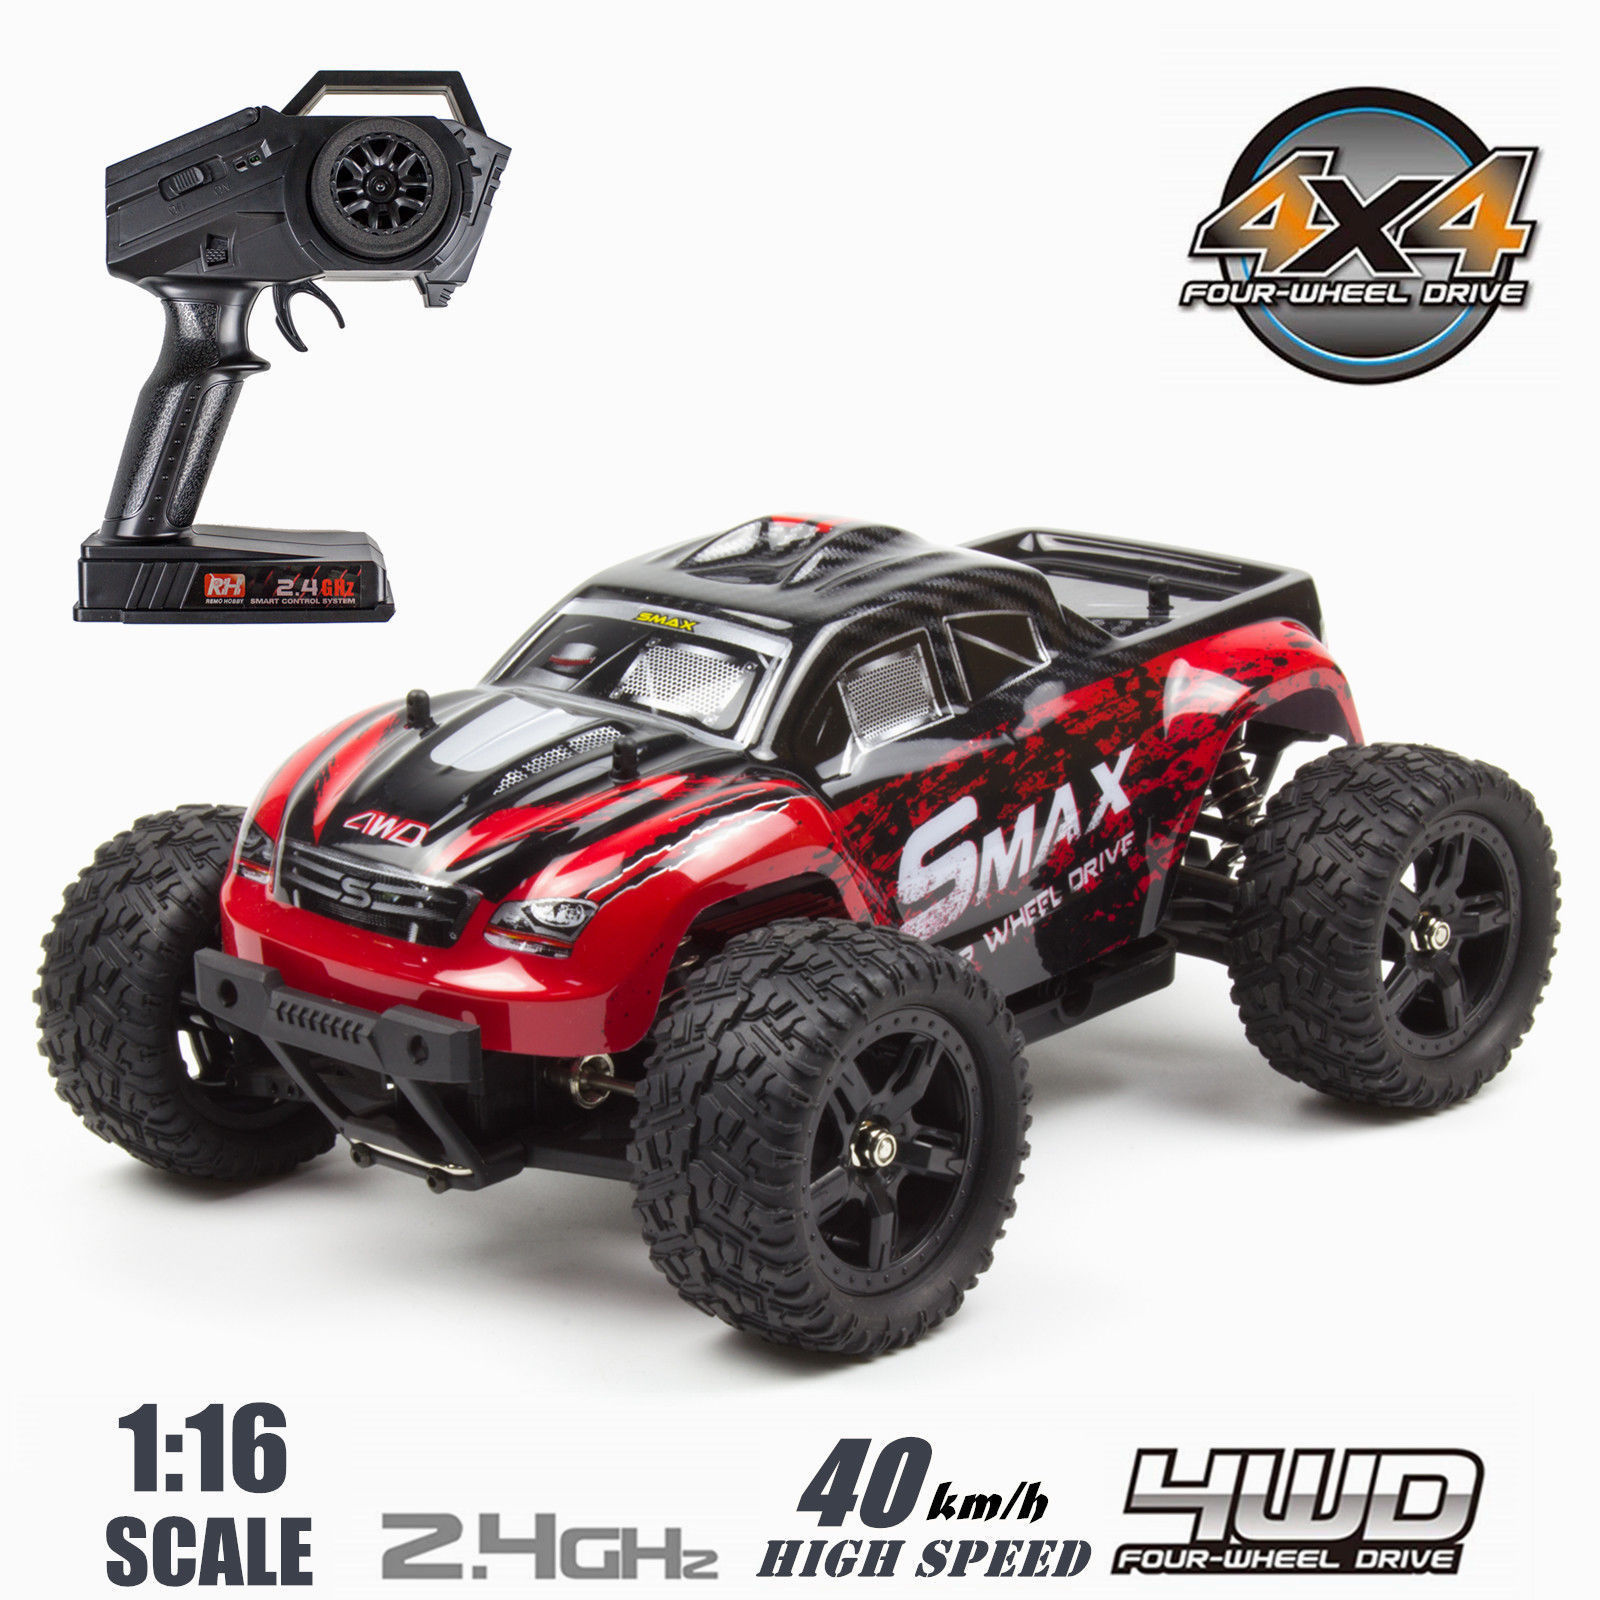 REMO HOBBY 4WD RC Brushed Car 1631 1 16 Scale Off-road Short-haul Monster Truck by Remo